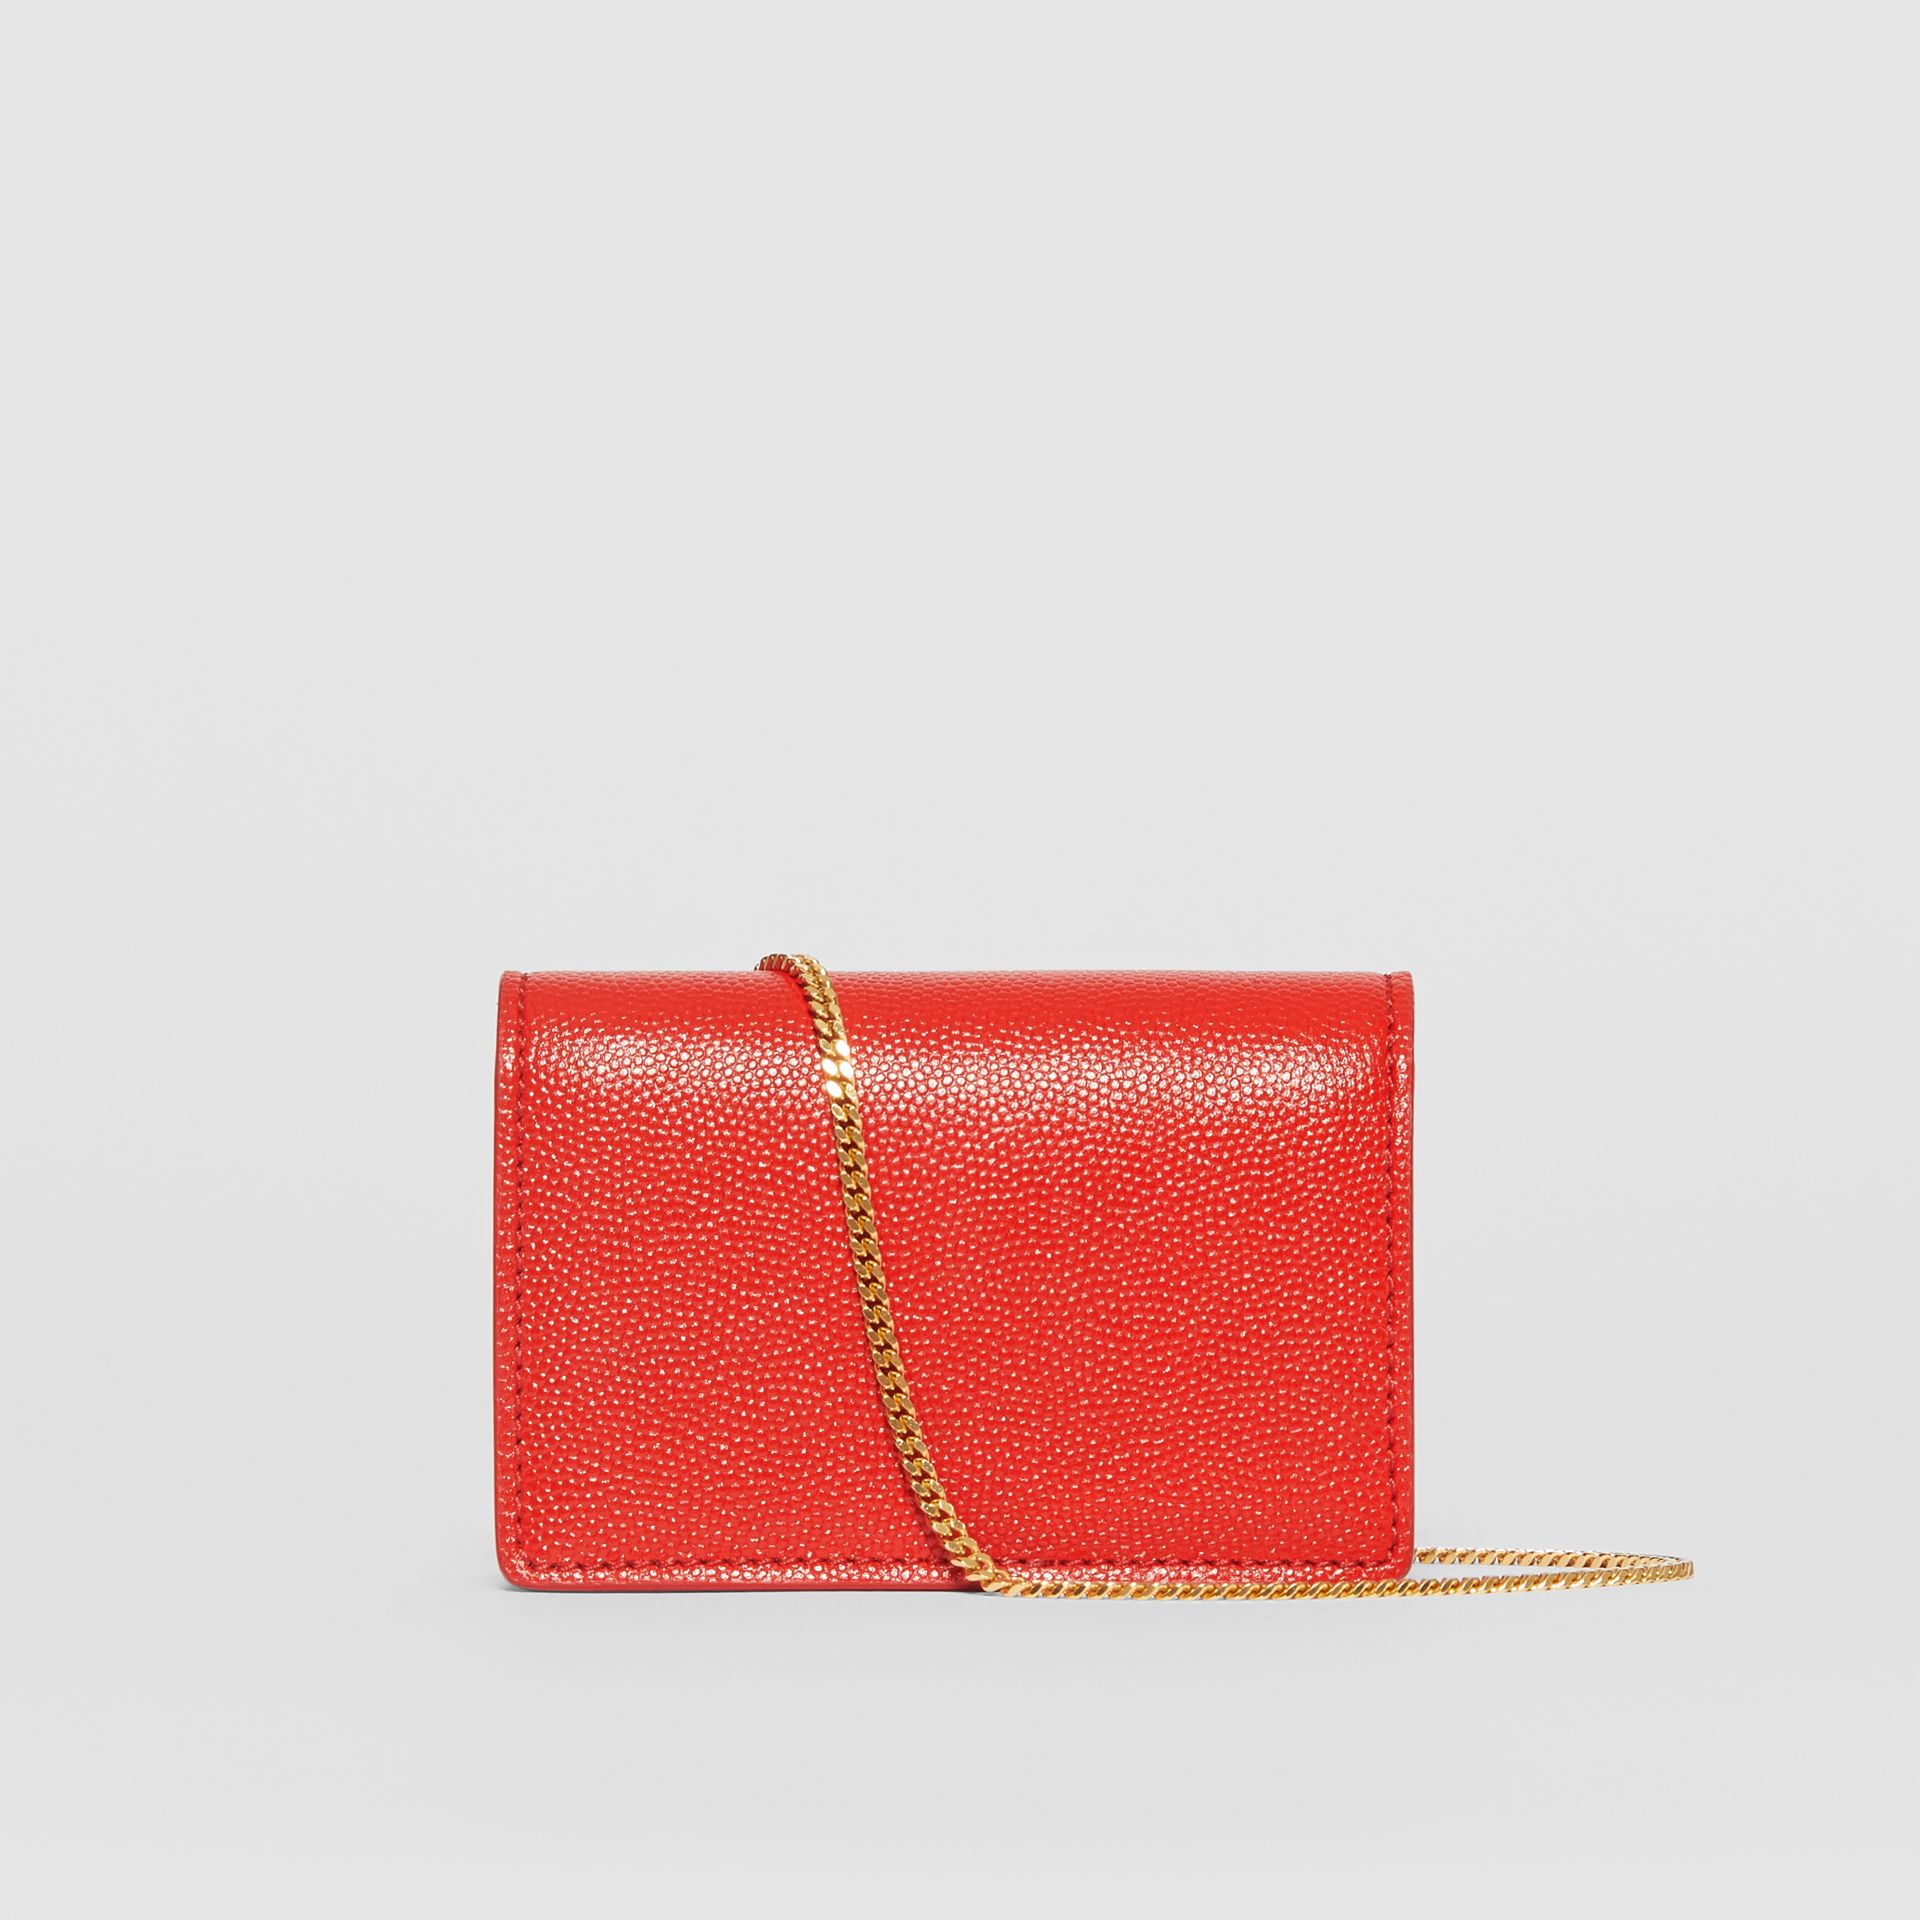 Grainy Leather Card Case with Detachable Strap in Bright Red - Women | Burberry - gallery image 7